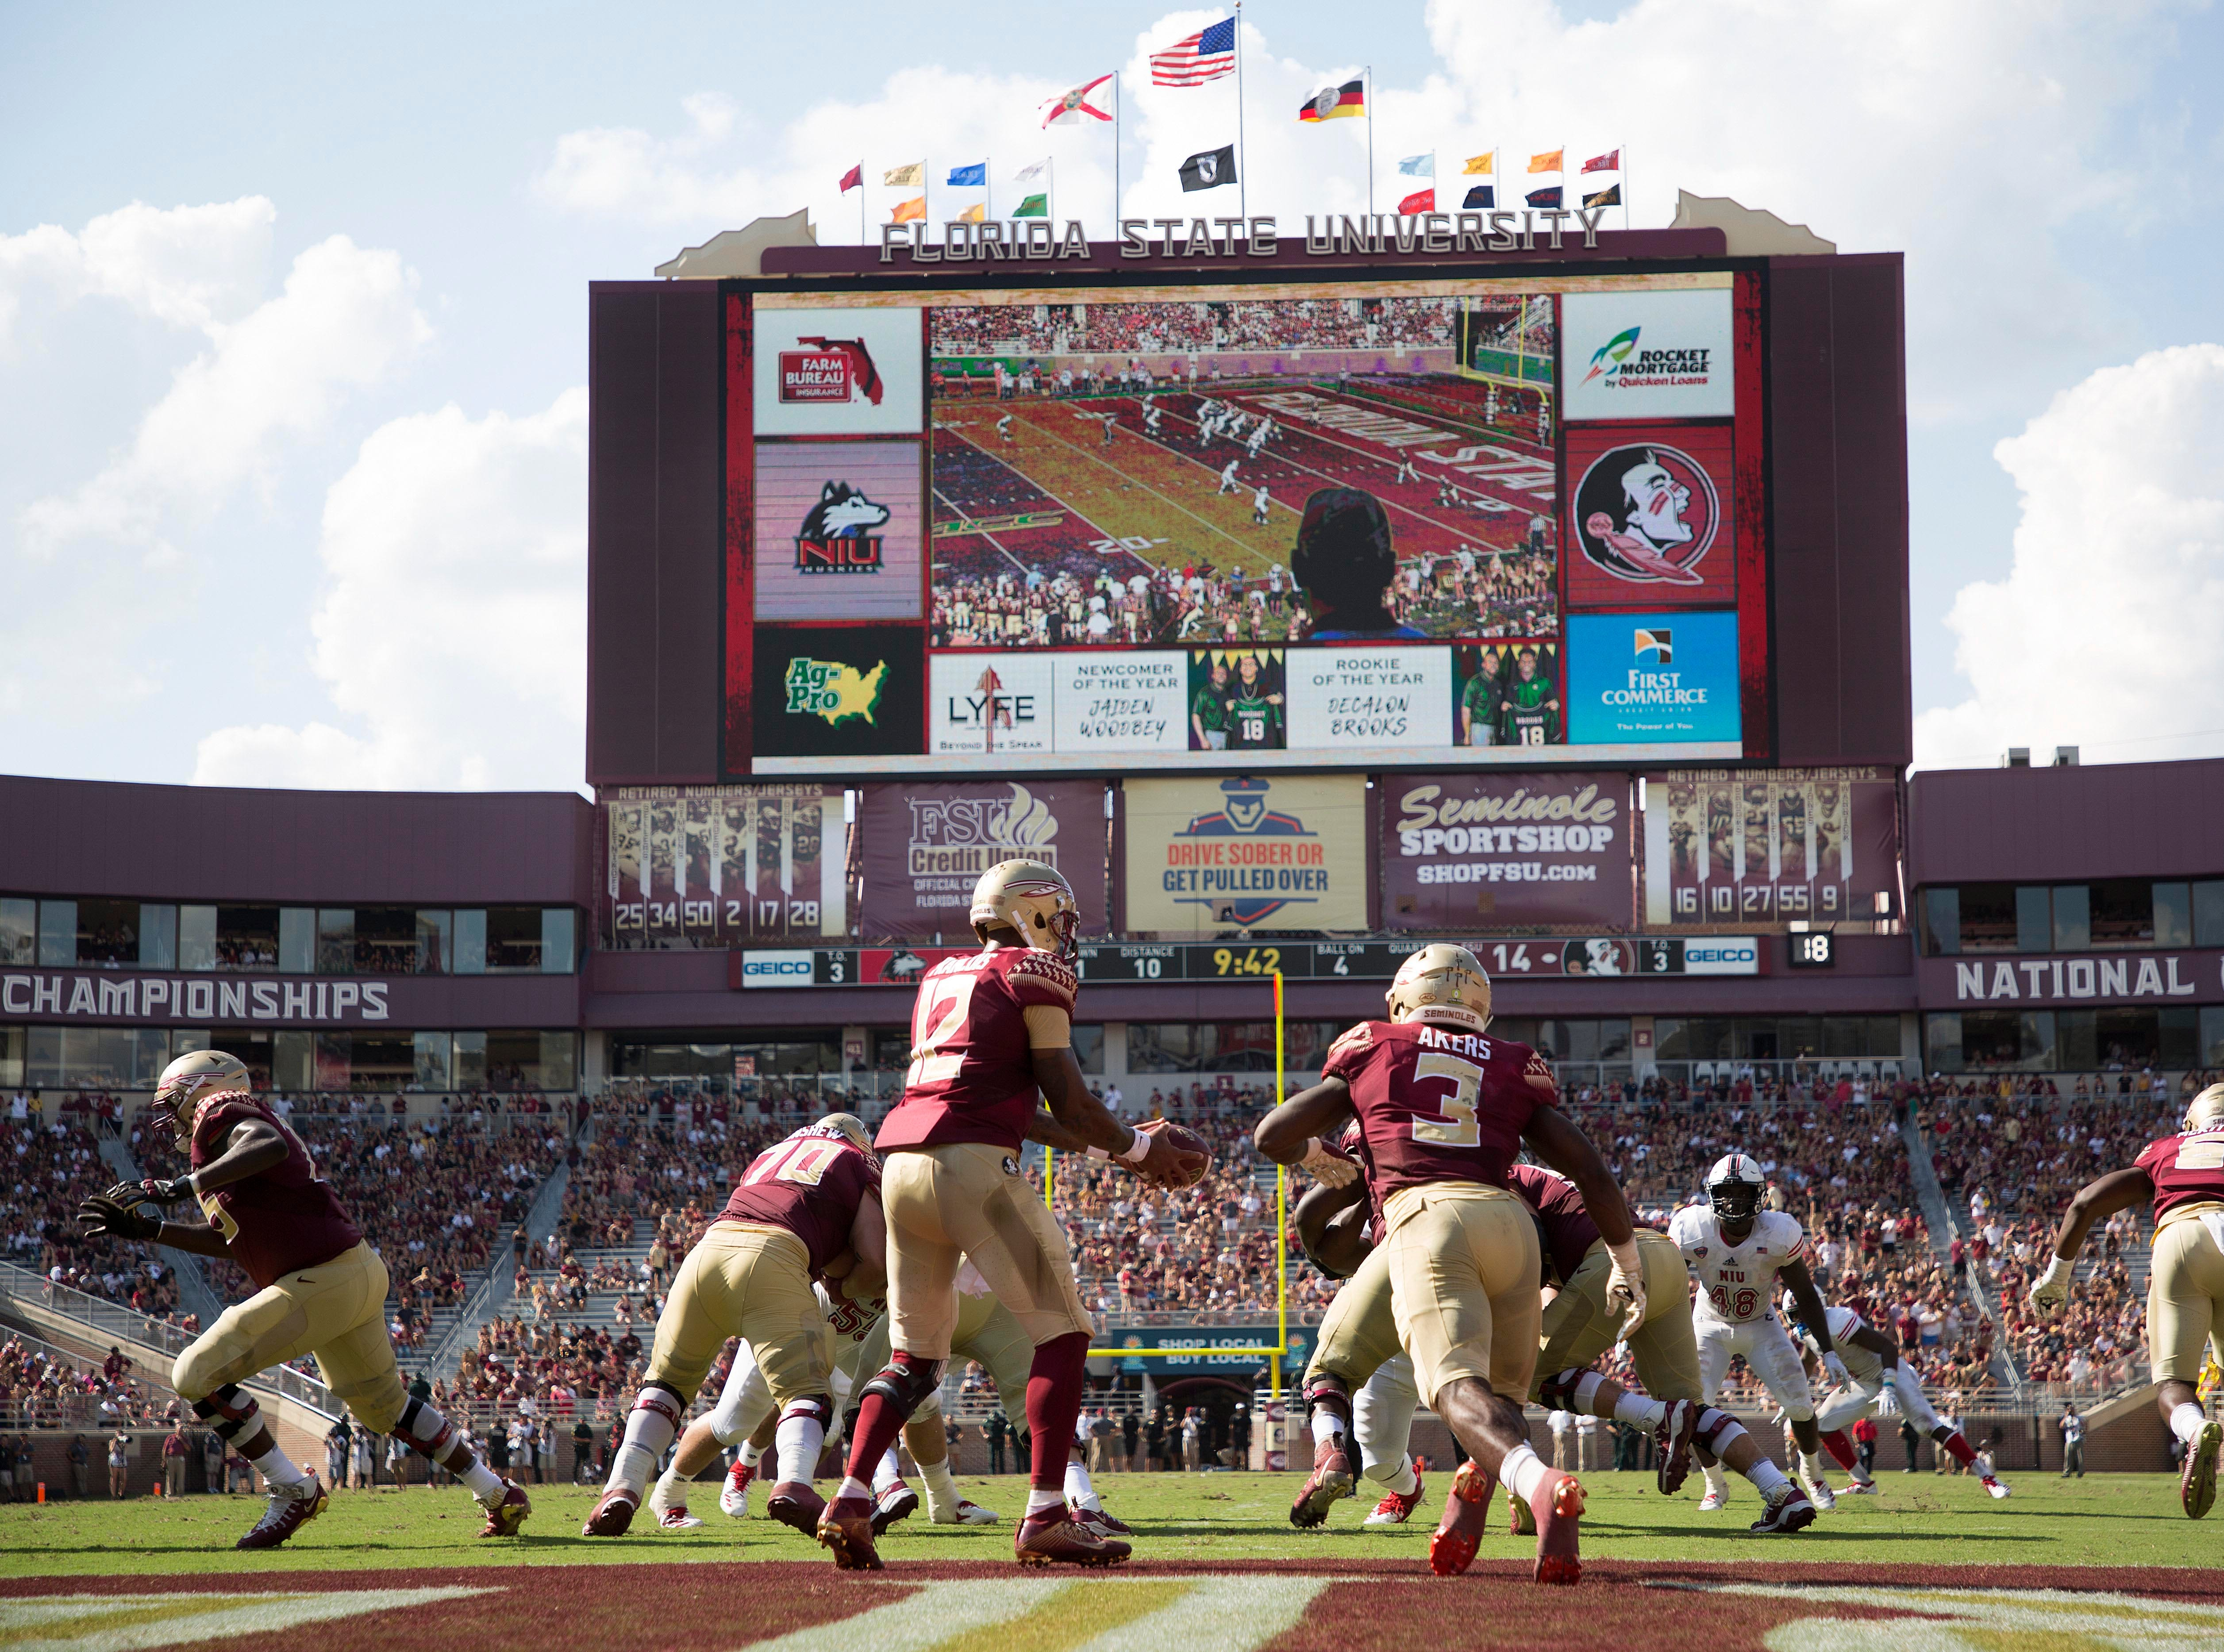 Sep 22, 2018; Tallahassee, FL, USA; The Florida State Seminoles start a drive from deep in their own territory against the Northern Illinois Huskies during the second quarter of play at Doak Campbell Stadium.